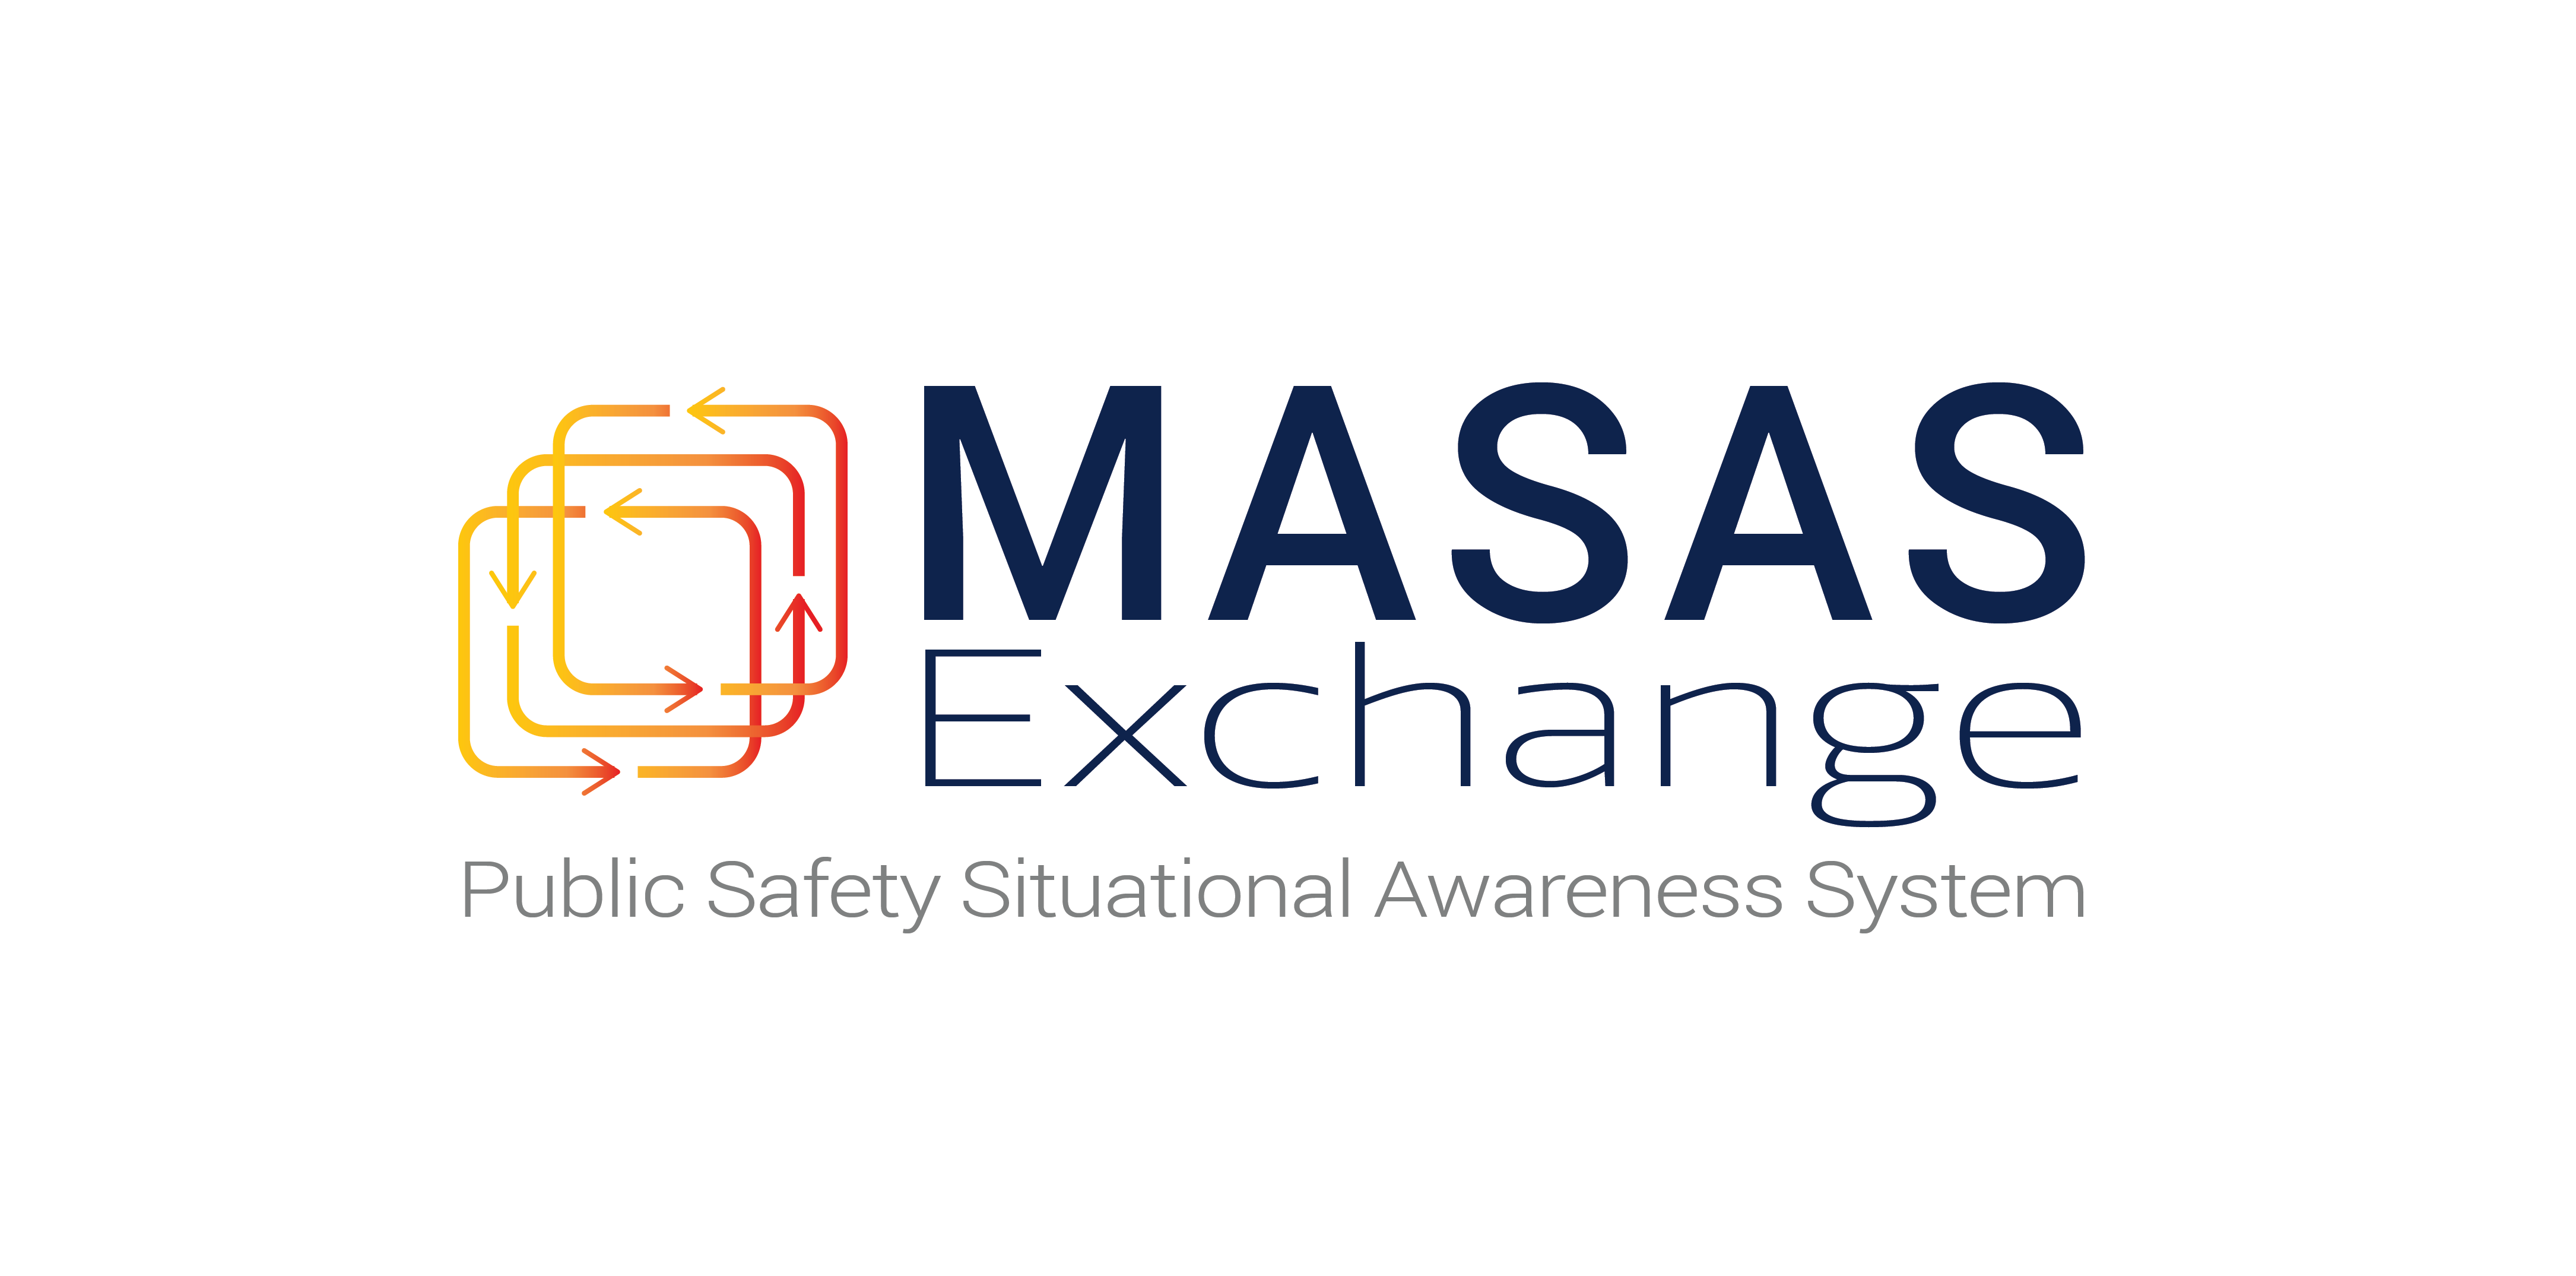 MASAS Exchange - Public Safety Situational Awareness System